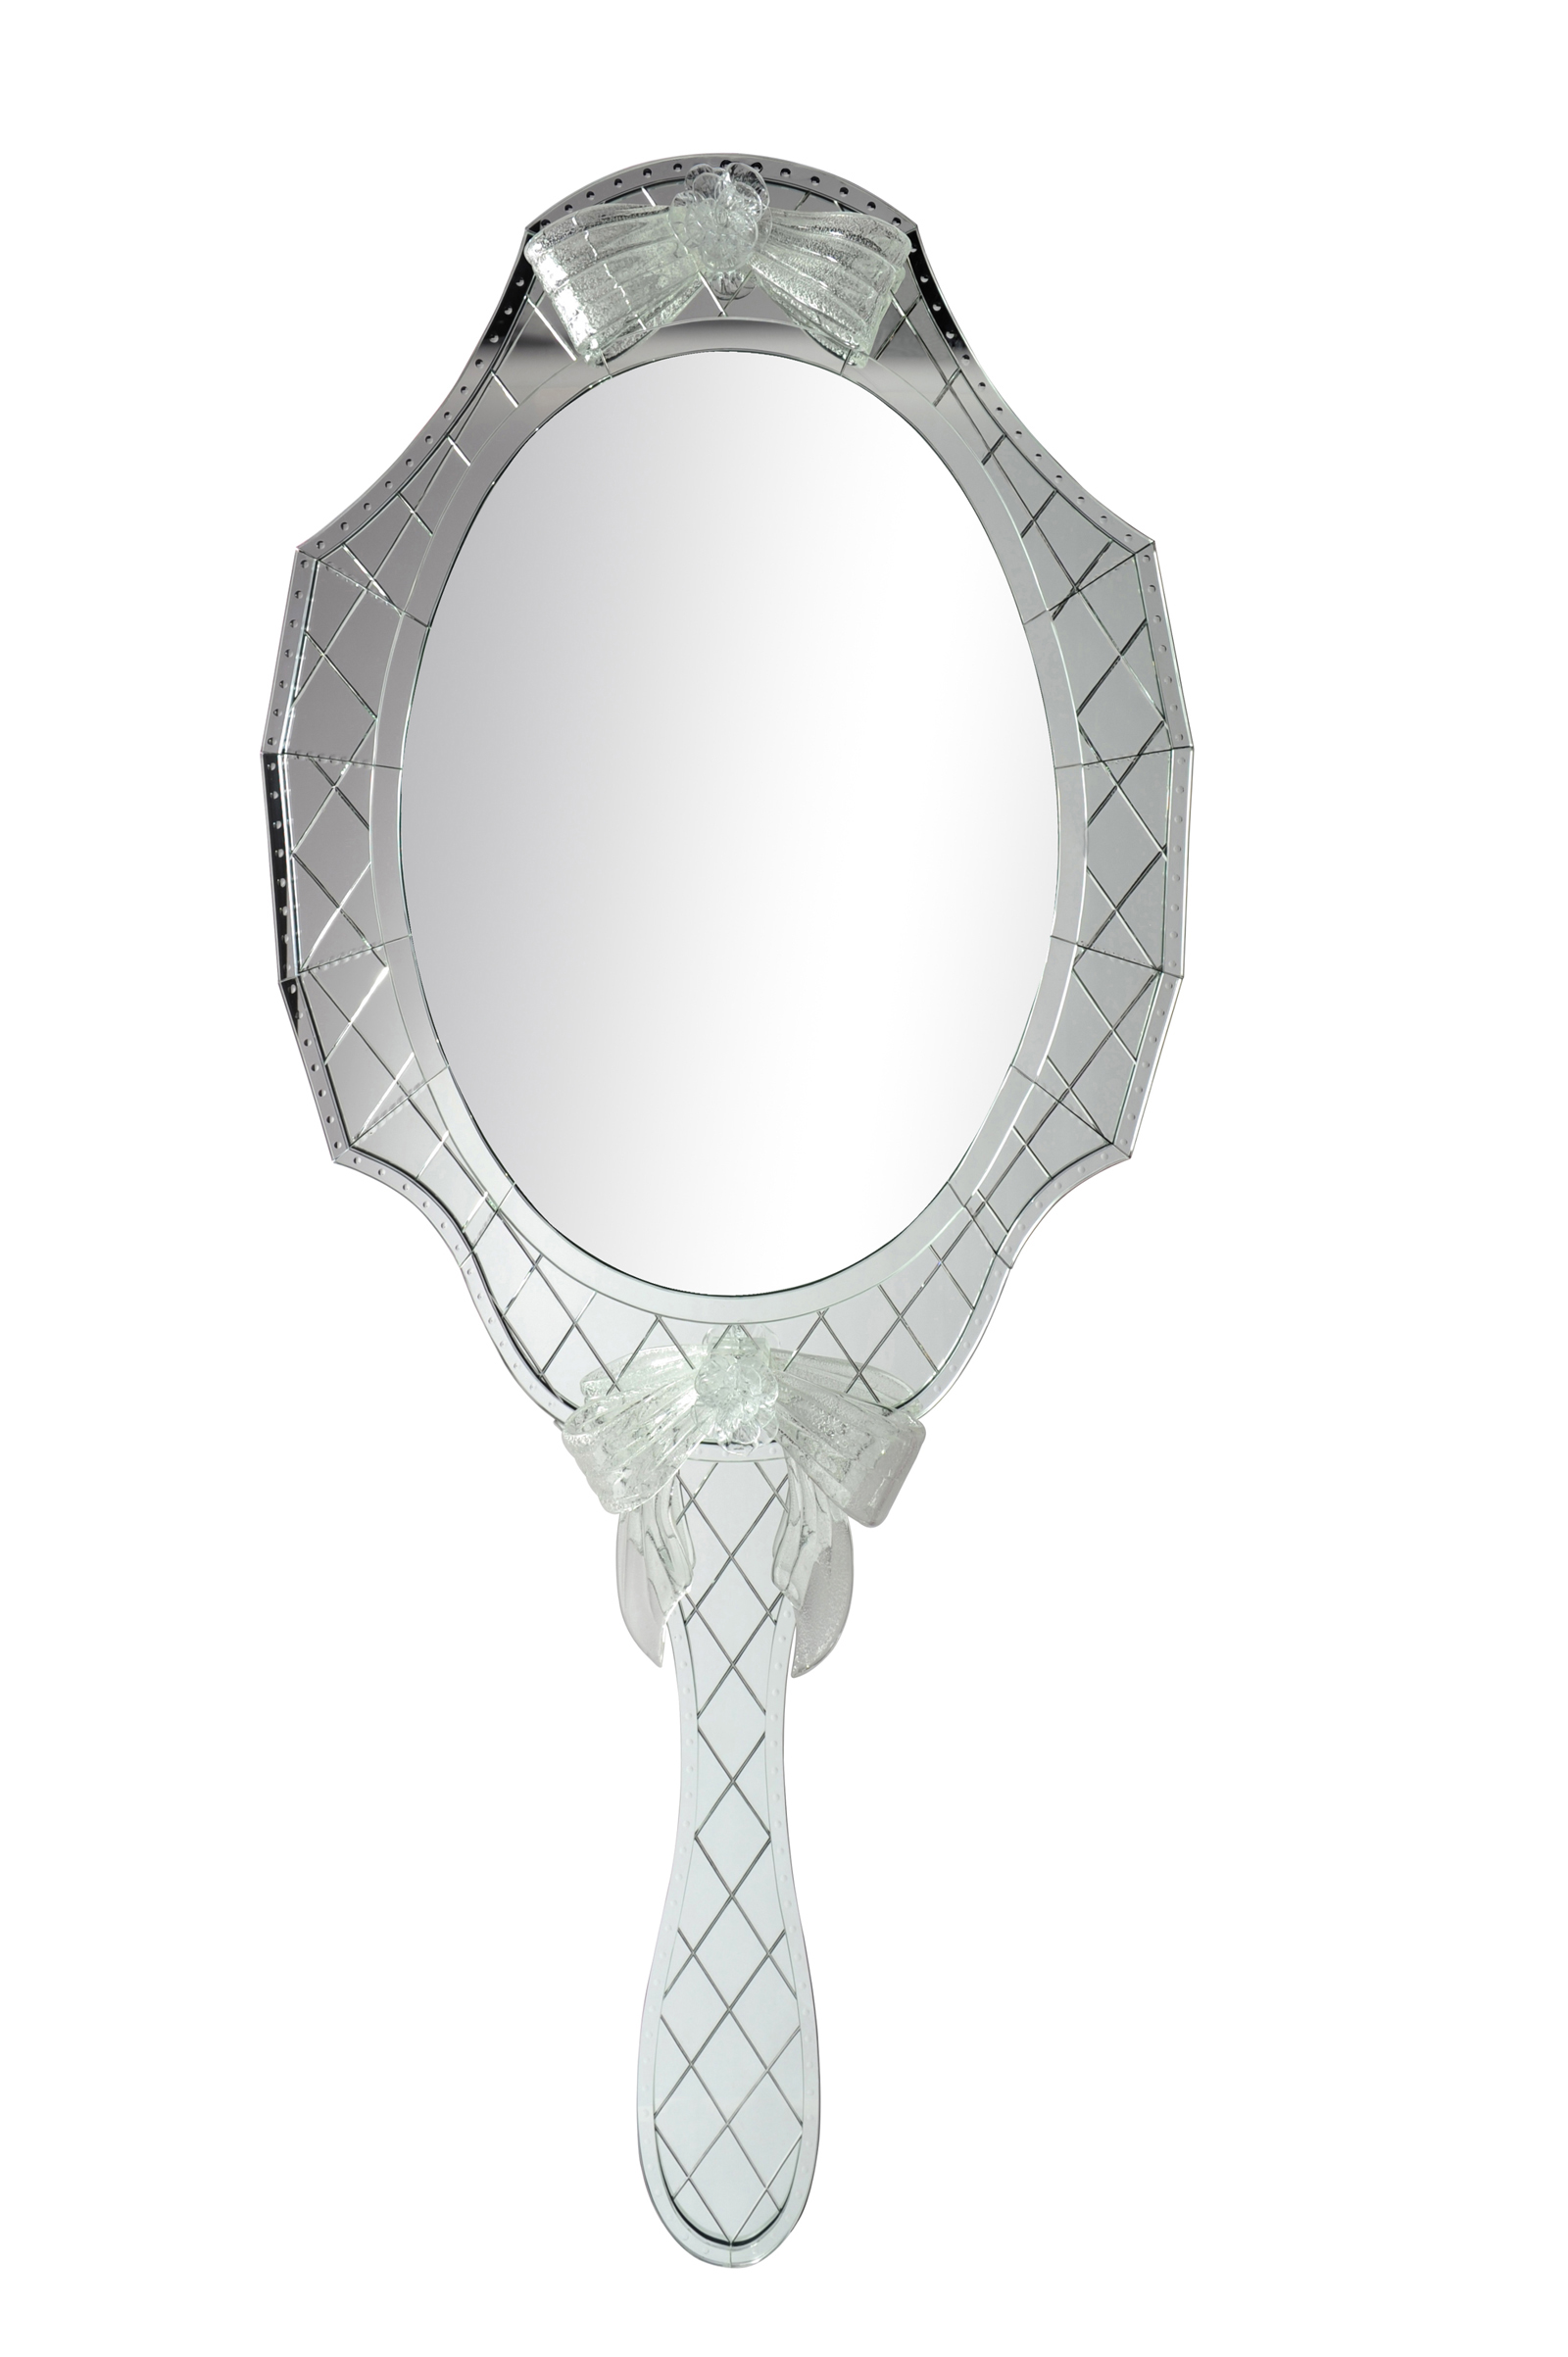 disproportionne-miroir-mirror-chantal-thomass-veronese-1.jpg